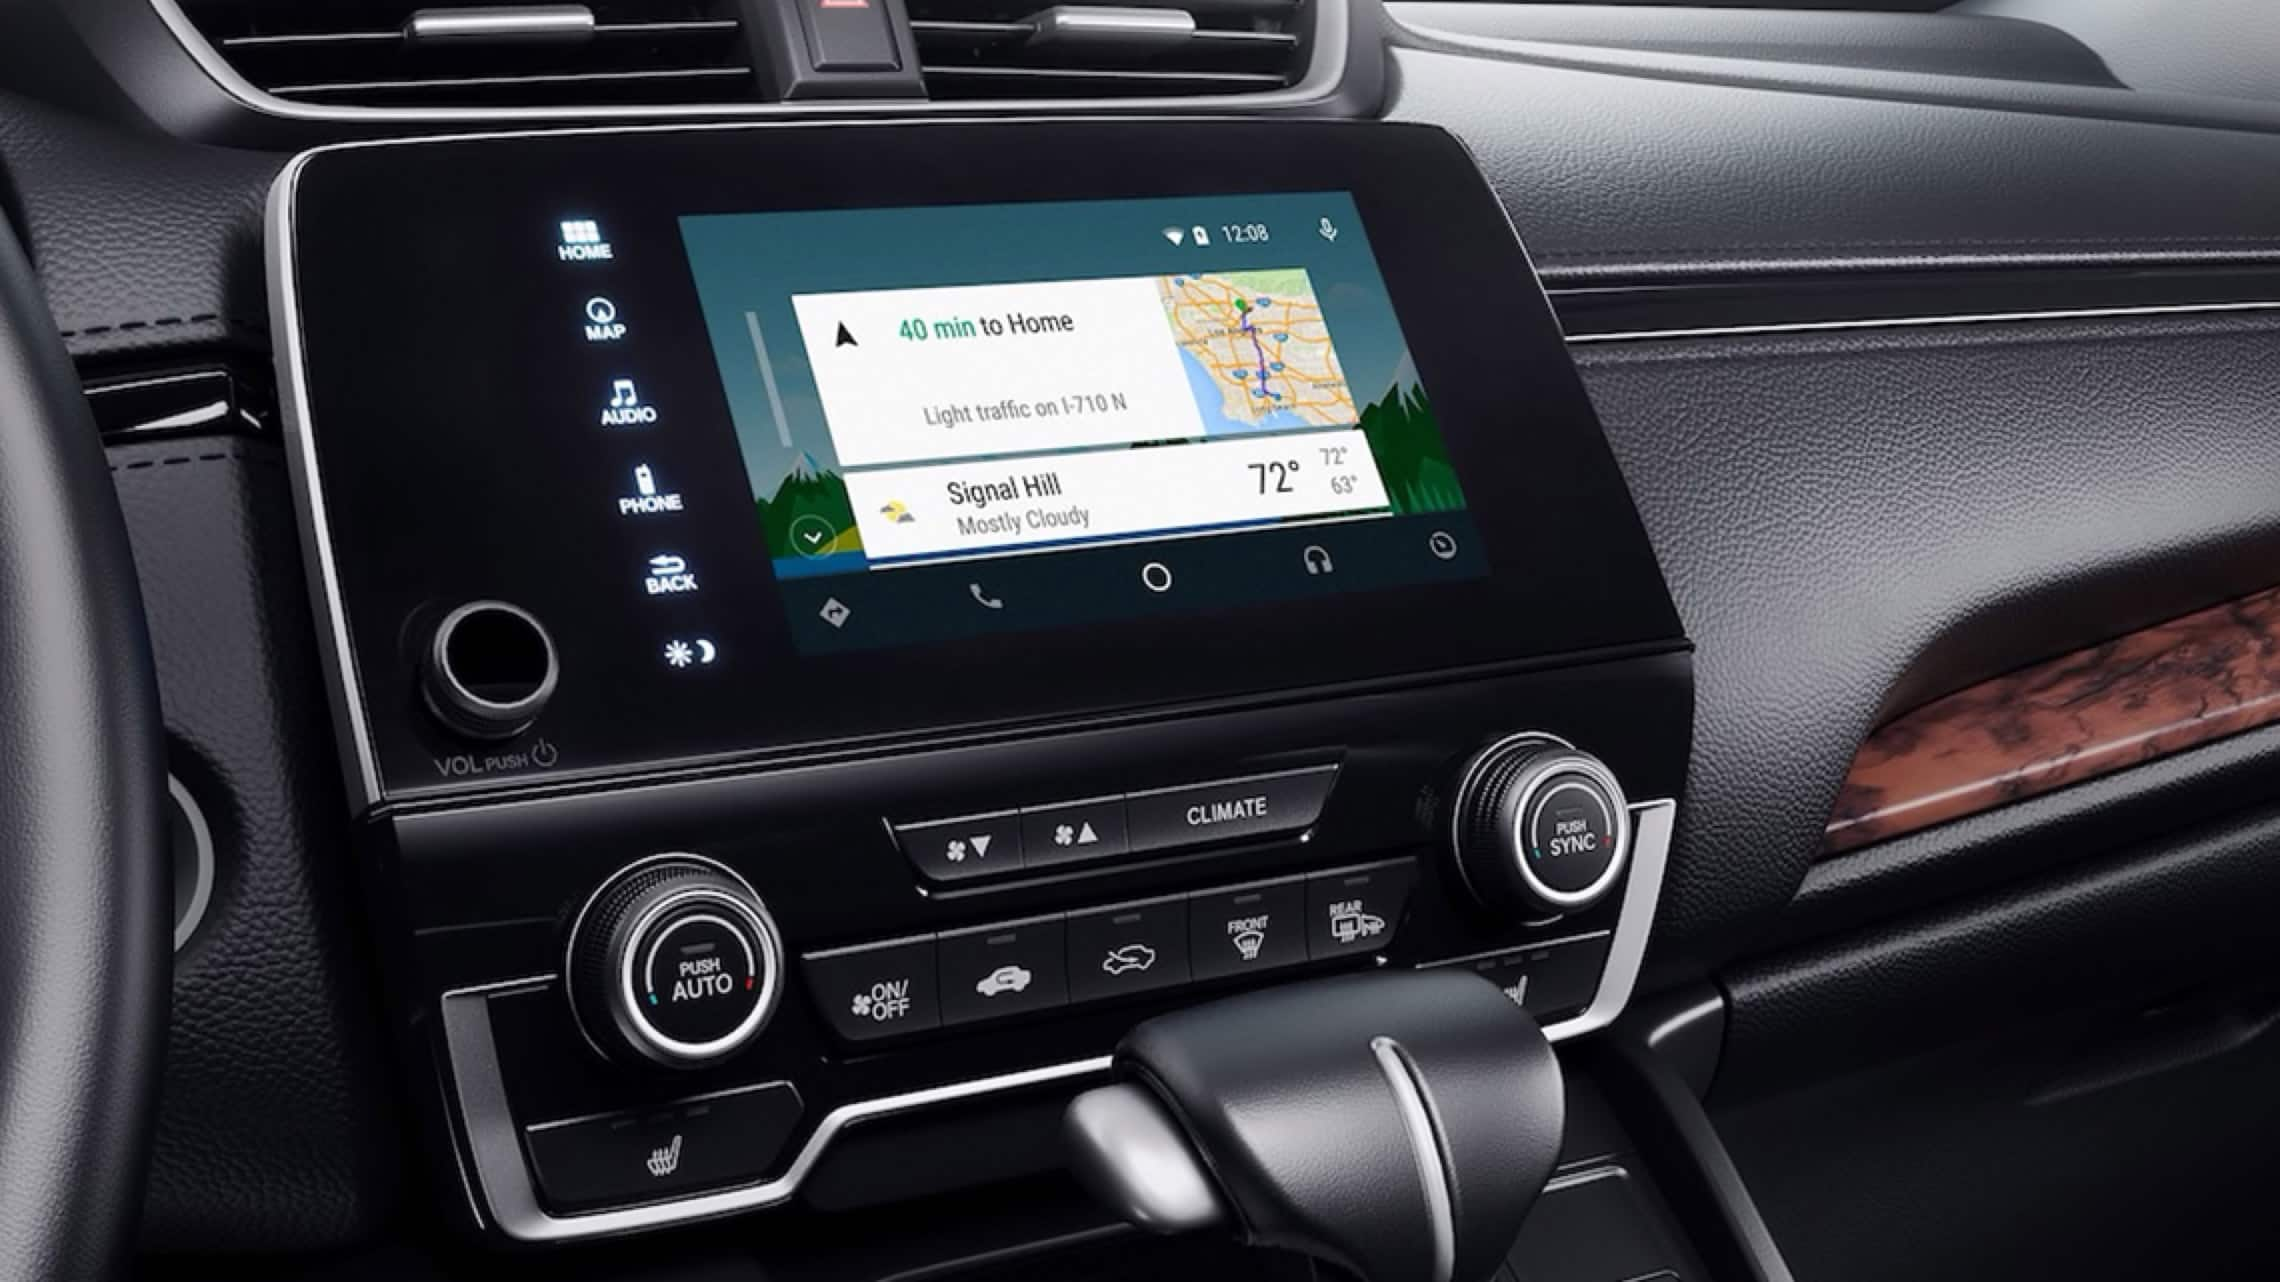 Display Audio touch-screen with Android Auto™ integration menu in the 2019 Honda CR-V.